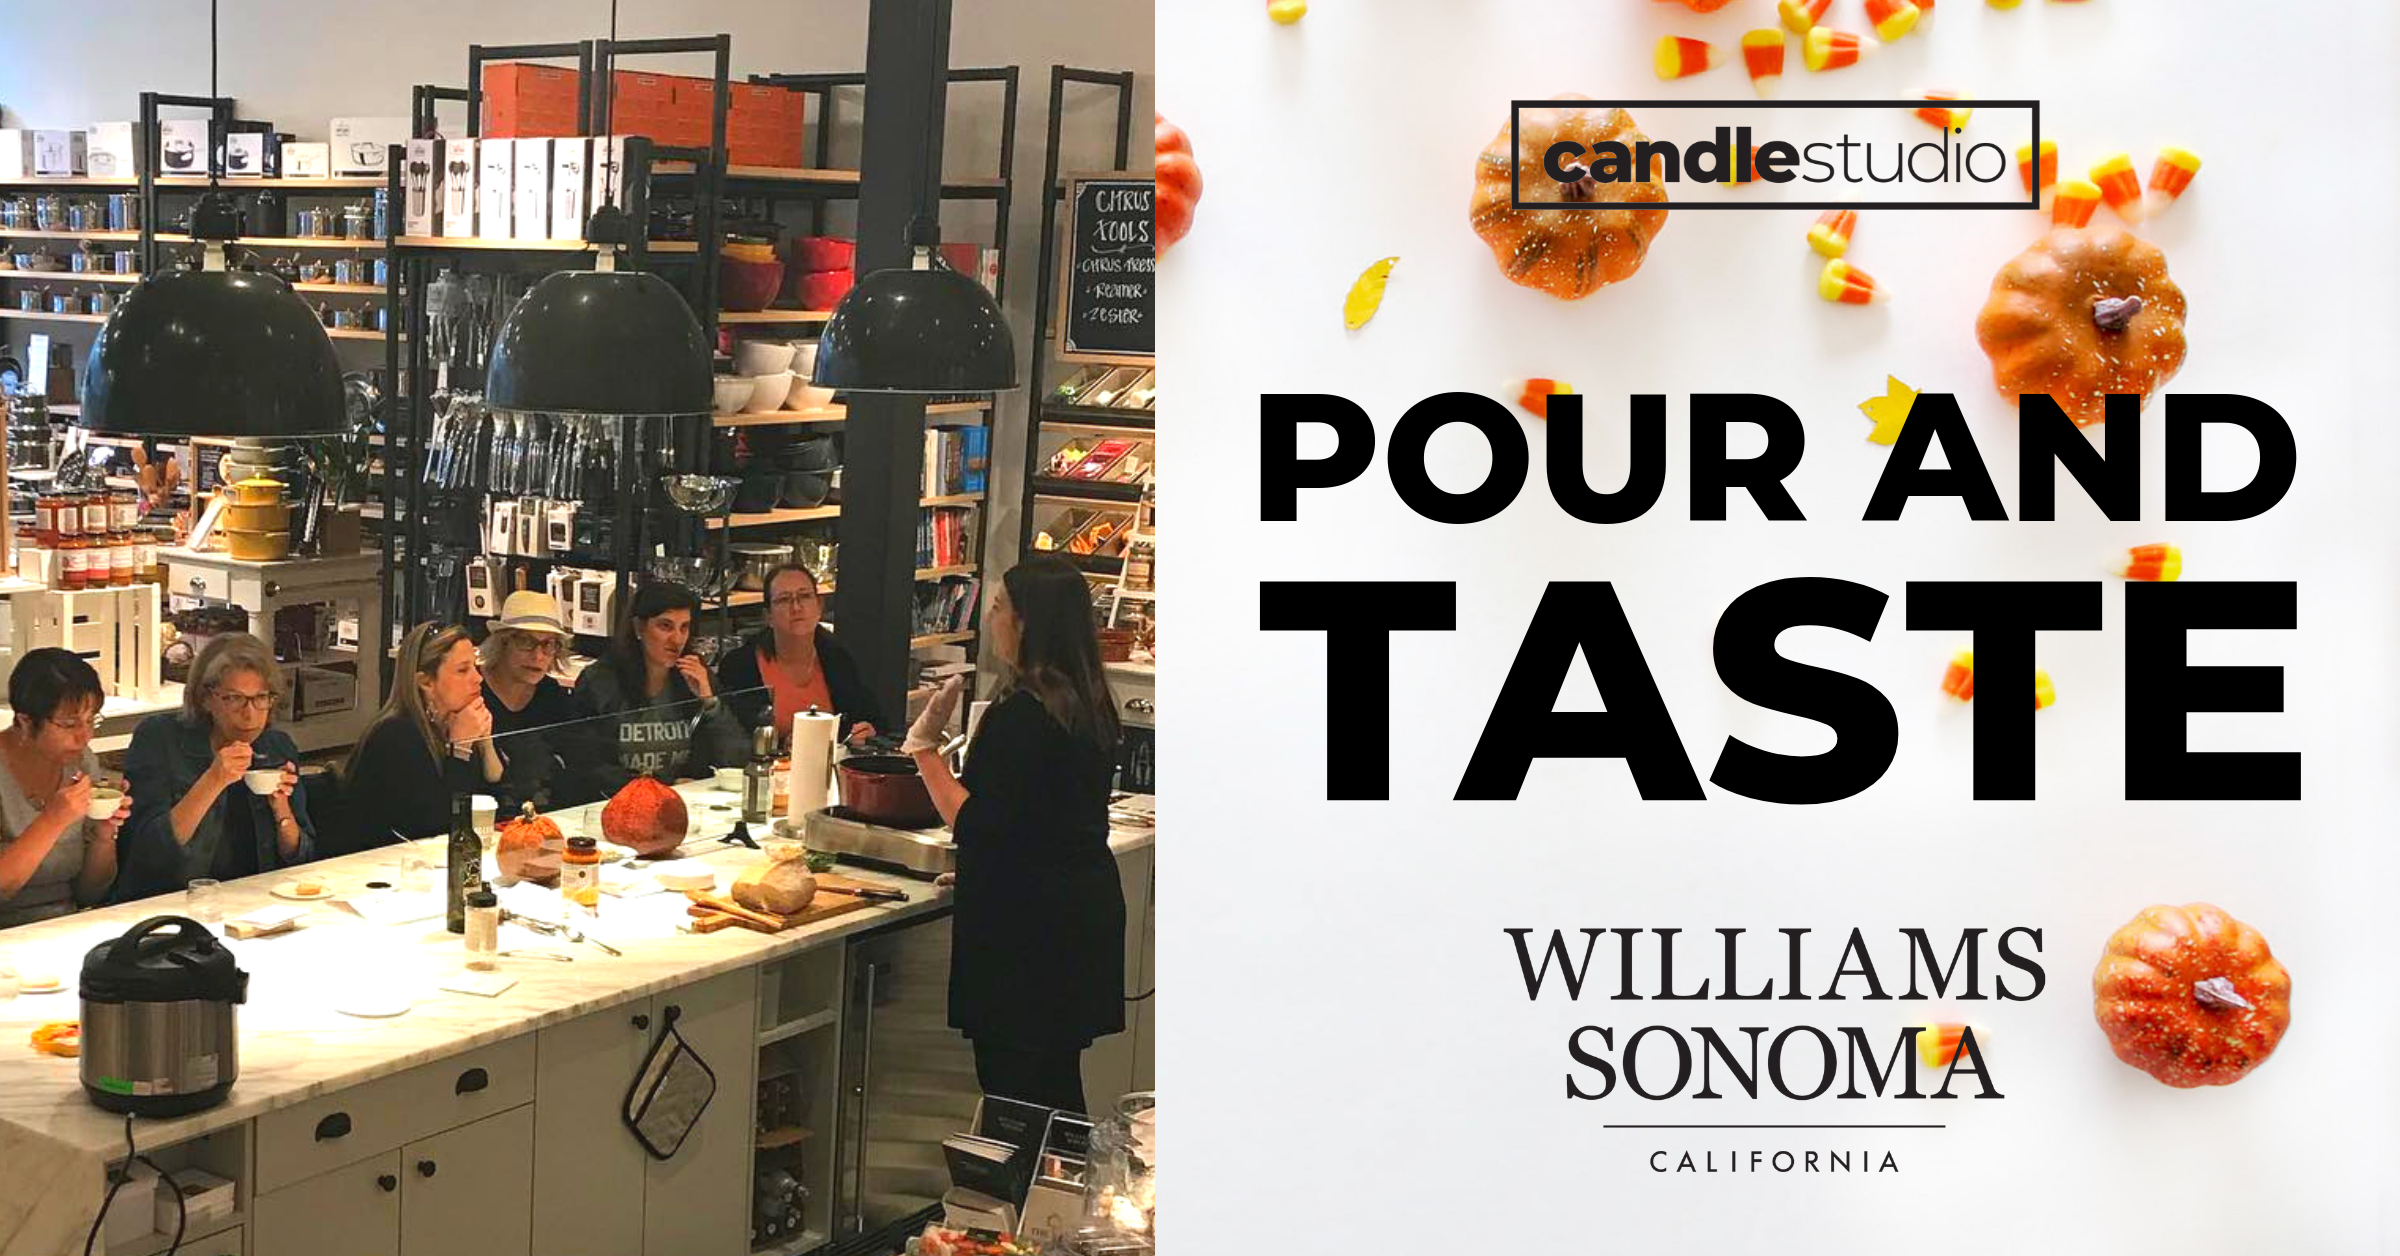 POUR AND TASTE FEATURING THE CANDLE STUDIO AND WILLIAM SONOMA